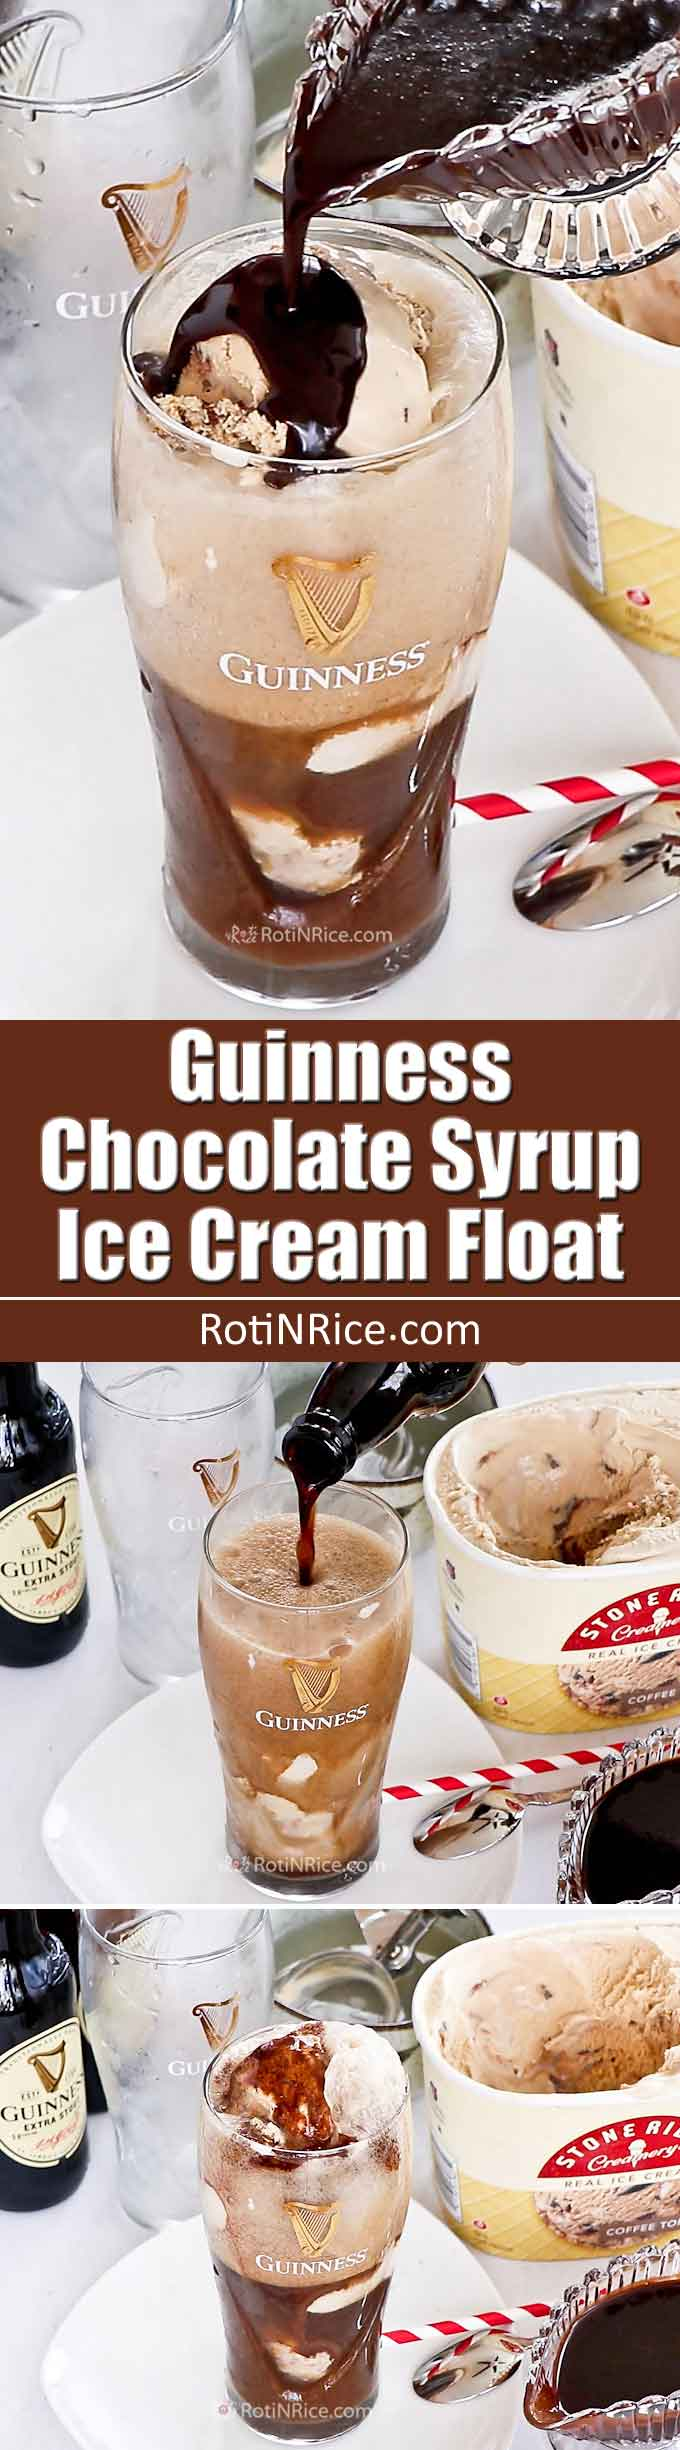 Round off an Irish or weekend themed dinner with this delicious Guinness Chocolate Syrup Ice Cream Float. Guinness stout, chocolate, and ice cream make this dessert so yummy! | RotiNRice.com